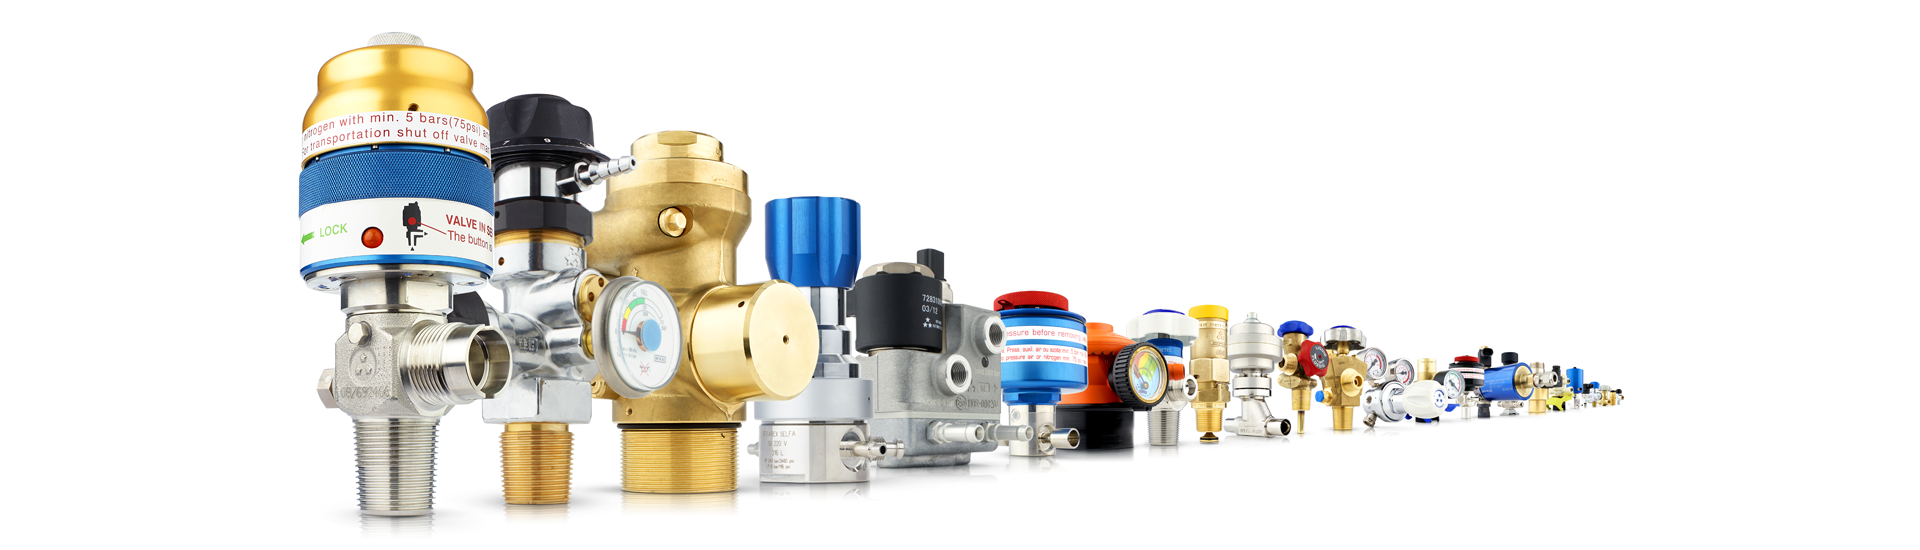 High quality Rotarex gas control valves, pressure regulators &f 